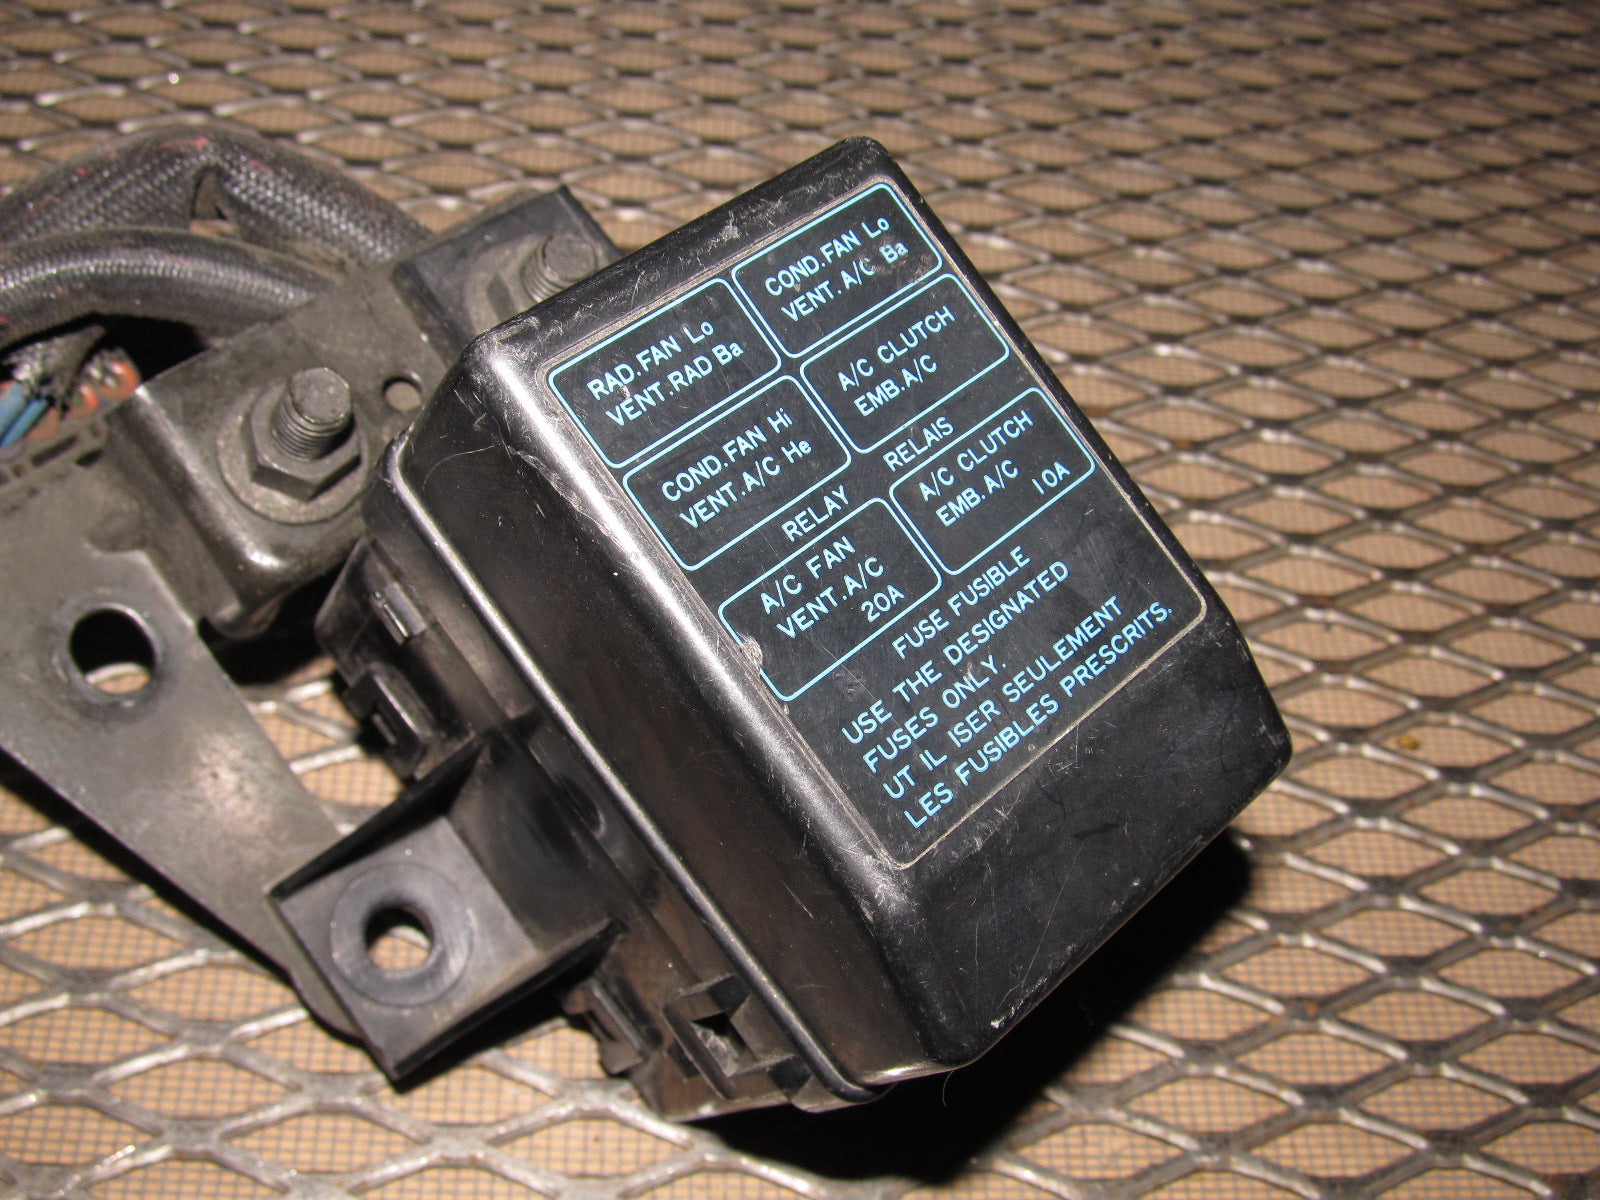 91 92 93 dodge stealth oem radiator fan a/c clutch fan relay fuse box